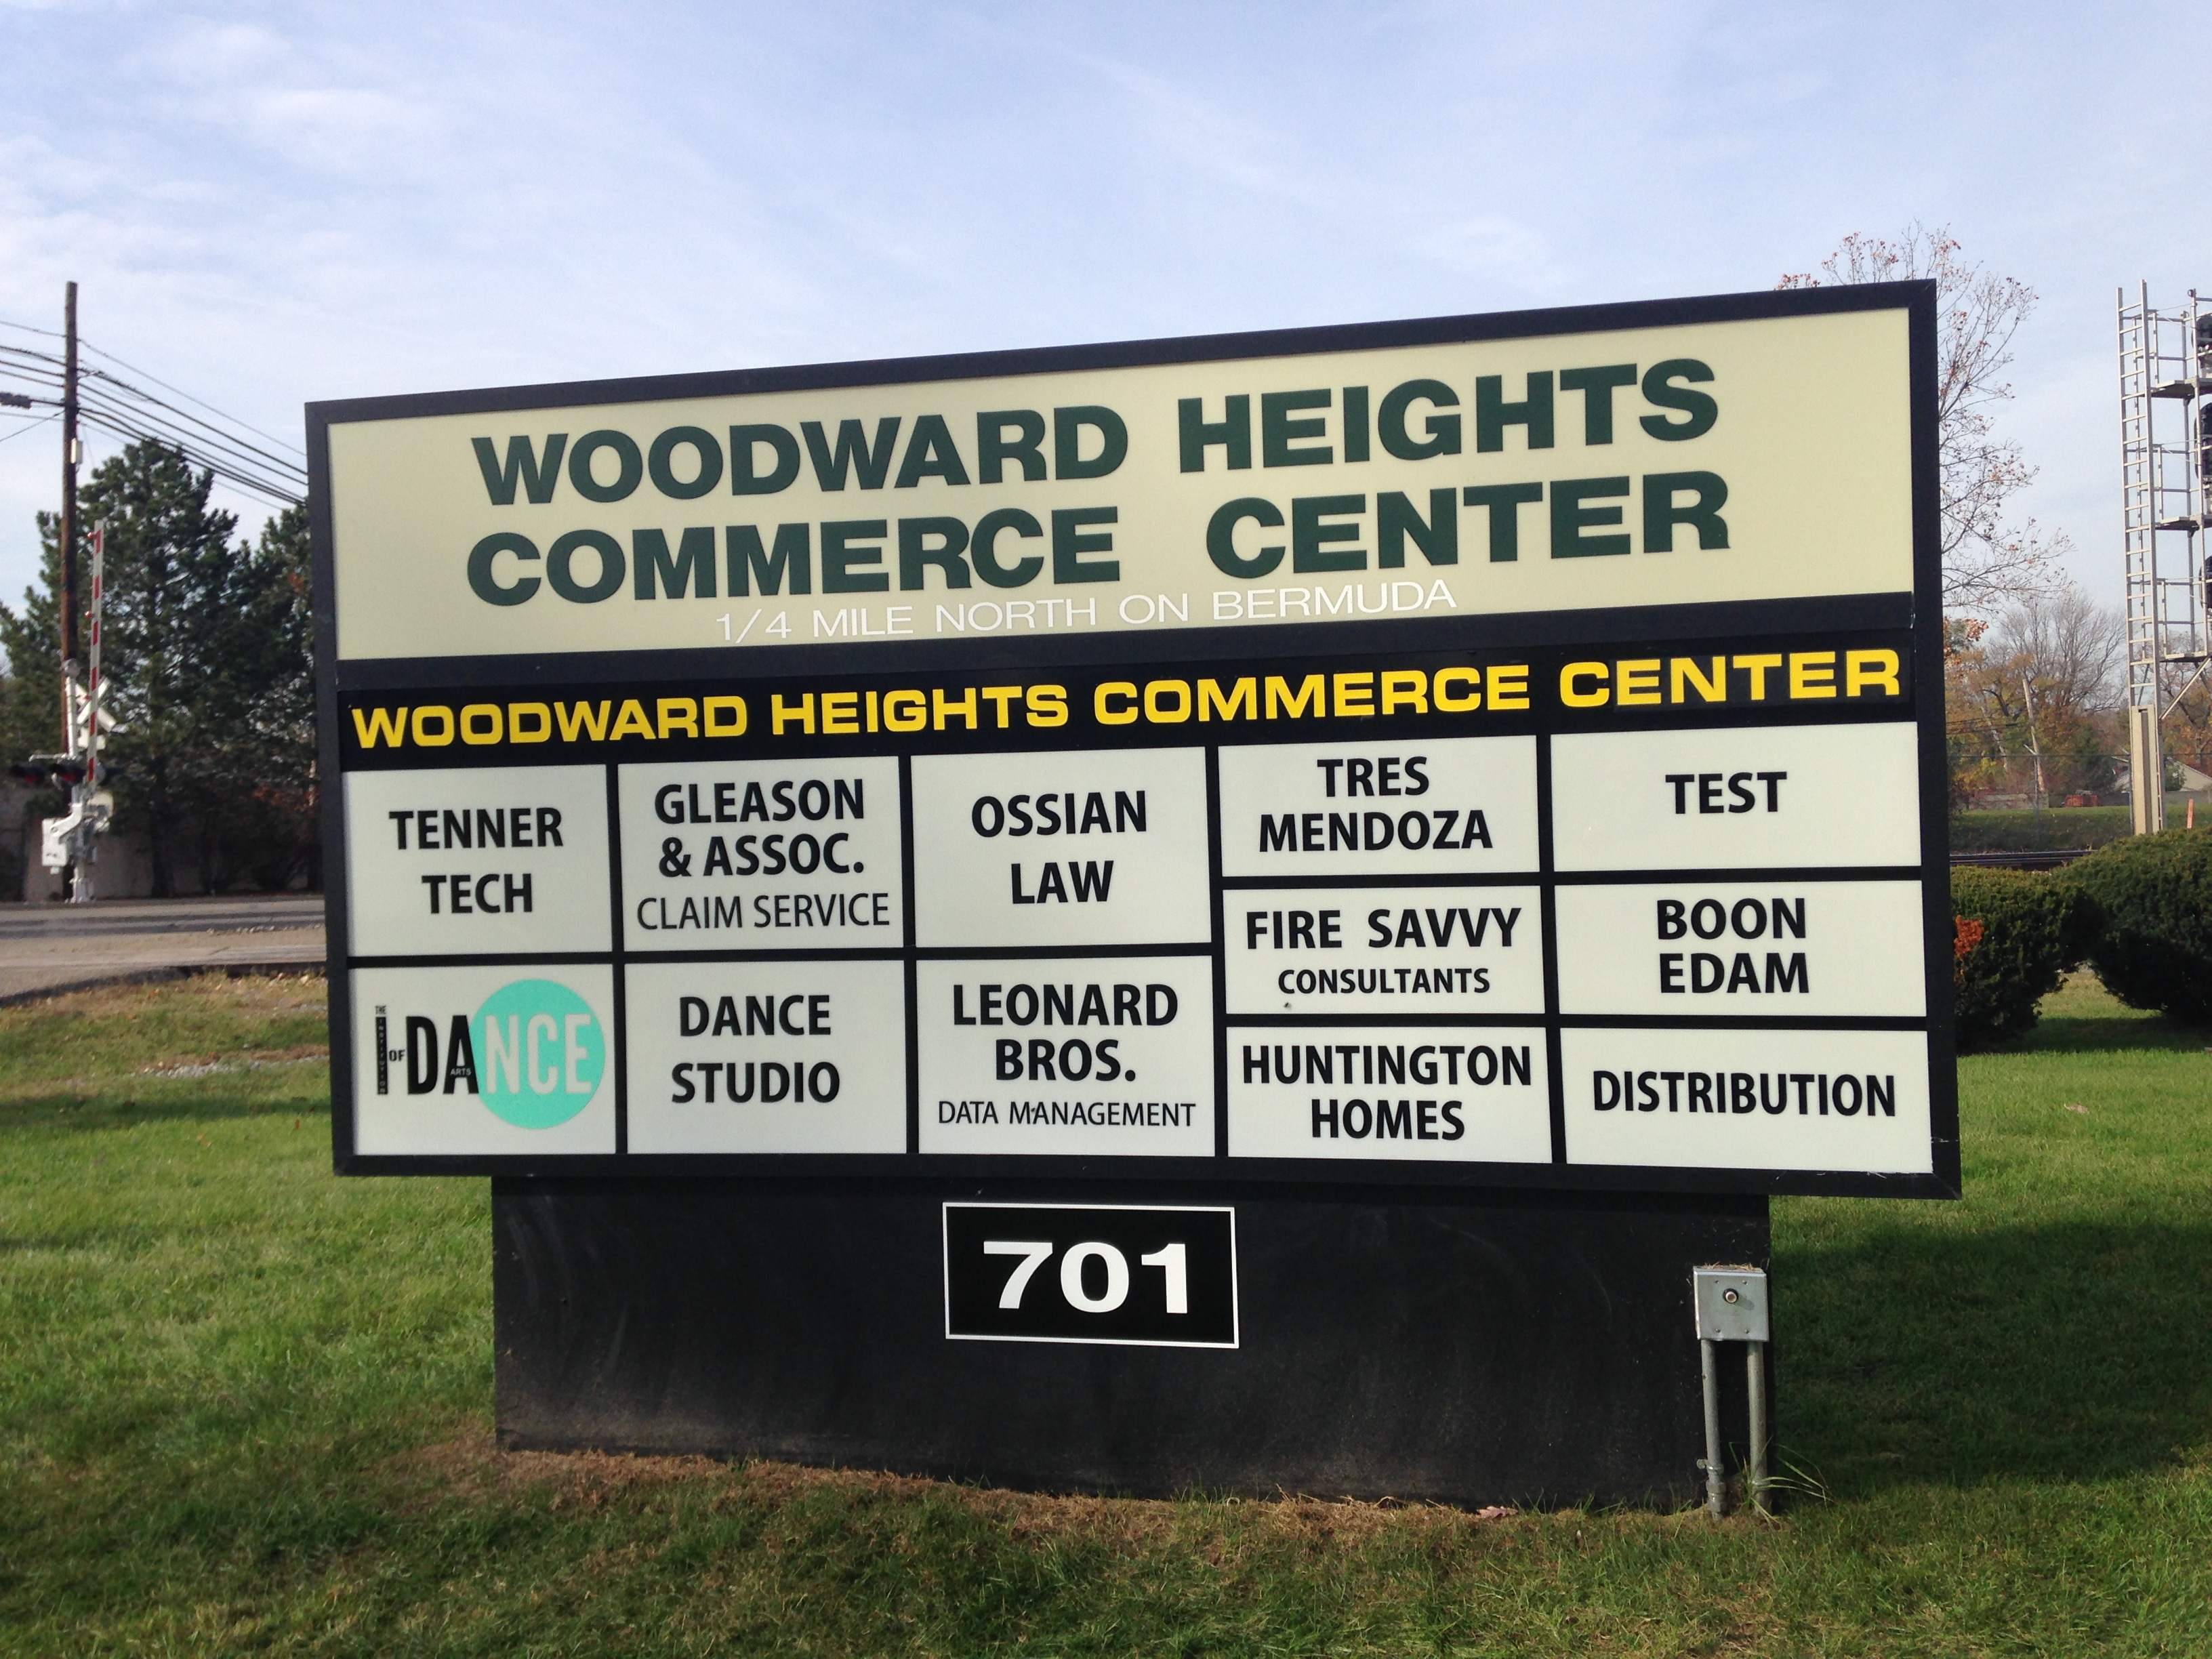 Woodward Heights Commerce Center